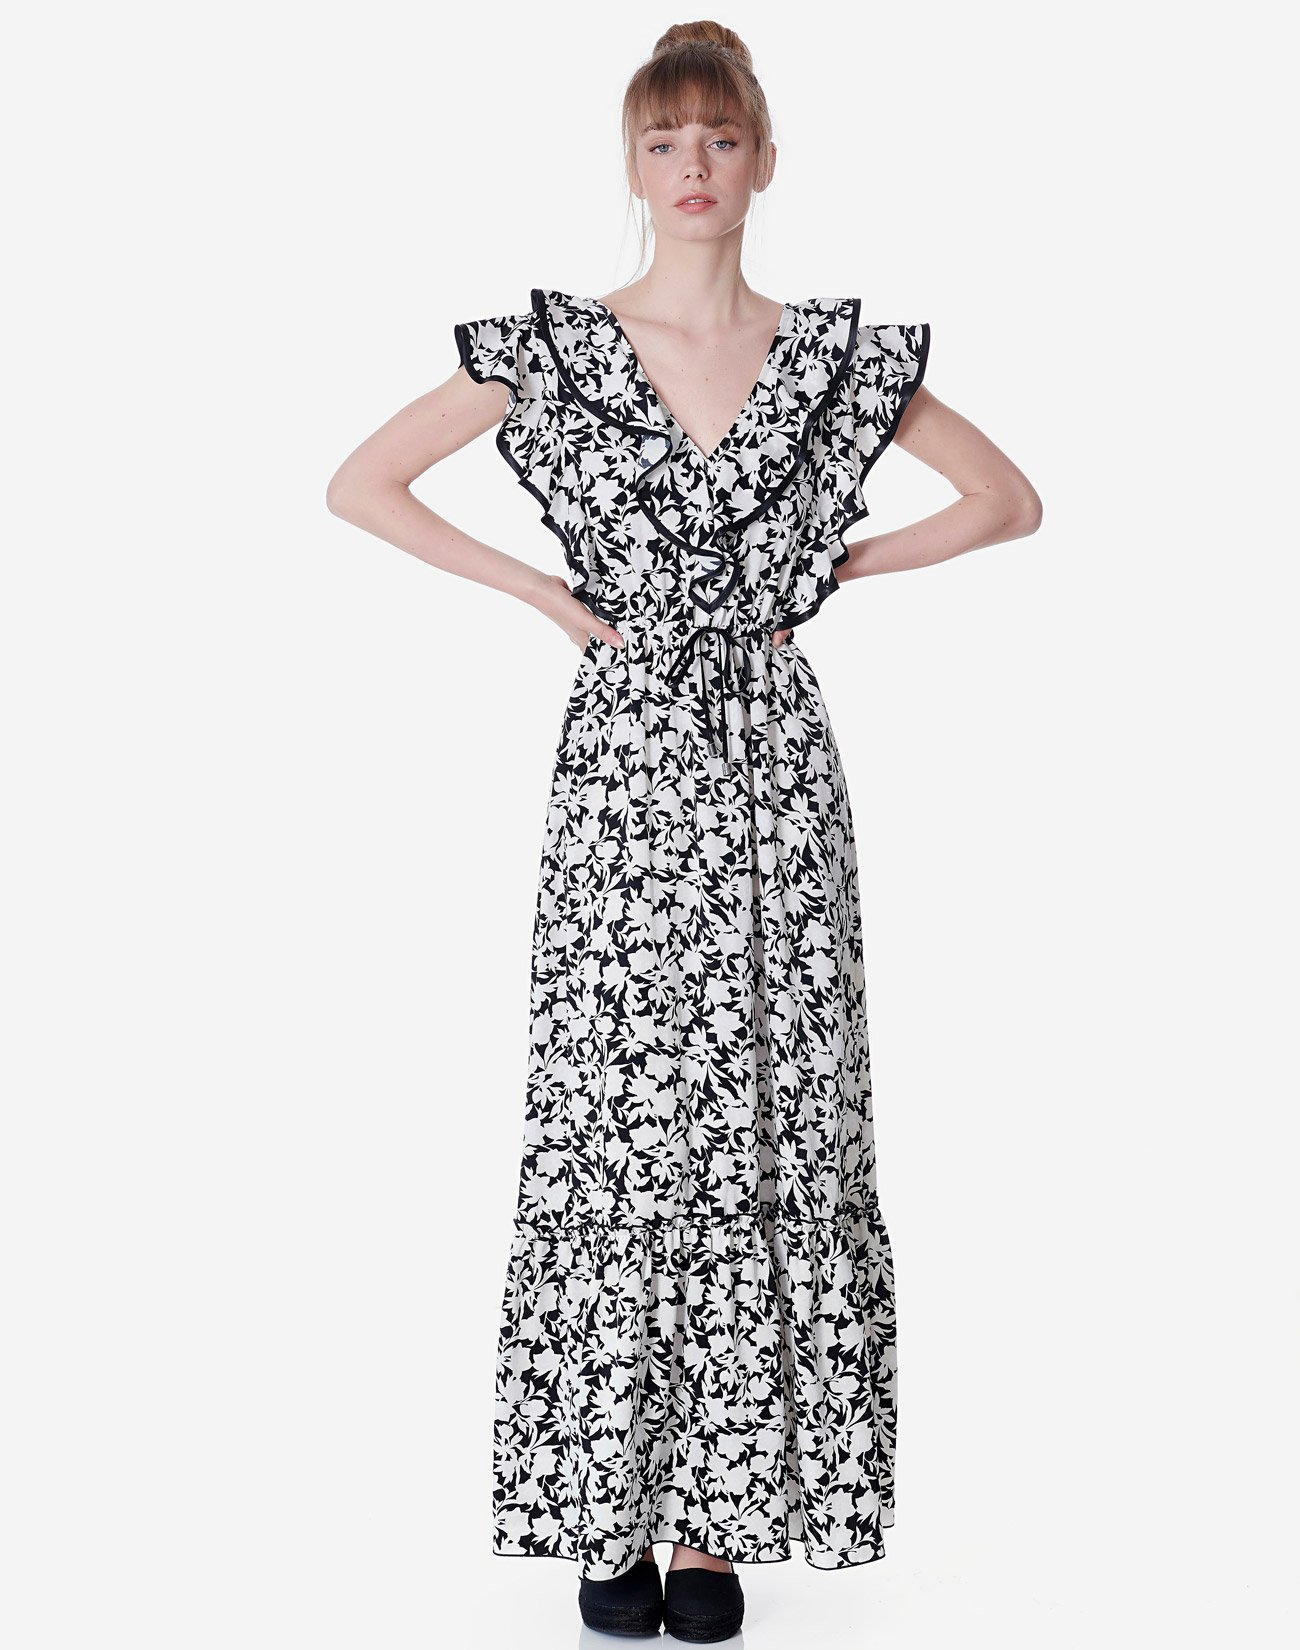 Printed maxi dress with ruffles